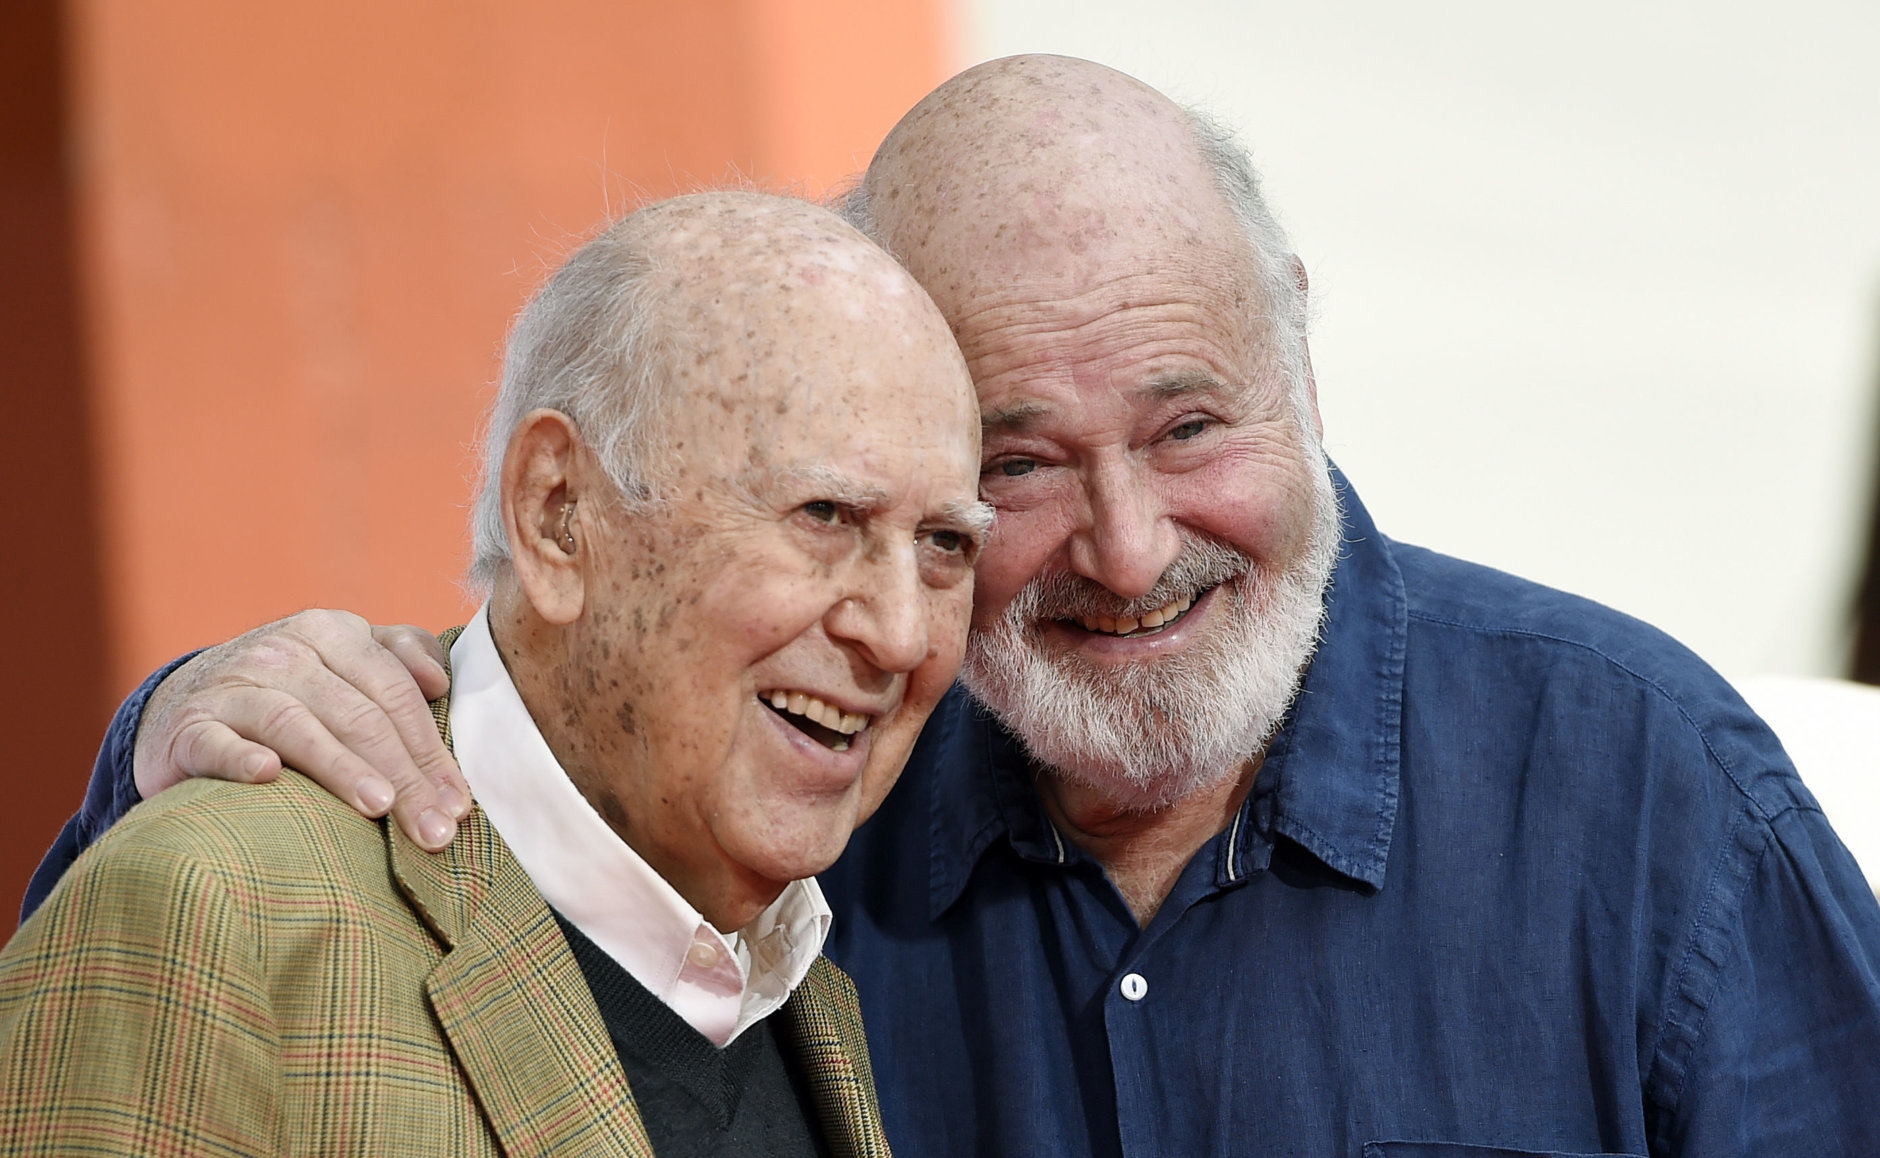 Carl Reiner, left, and his son Rob Reiner pose together following a hand and footprint ceremony for them at the TCL Chinese Theatre on Friday, April 7, 2017, in Los Angeles. (Photo by Chris Pizzello/Invision/AP)